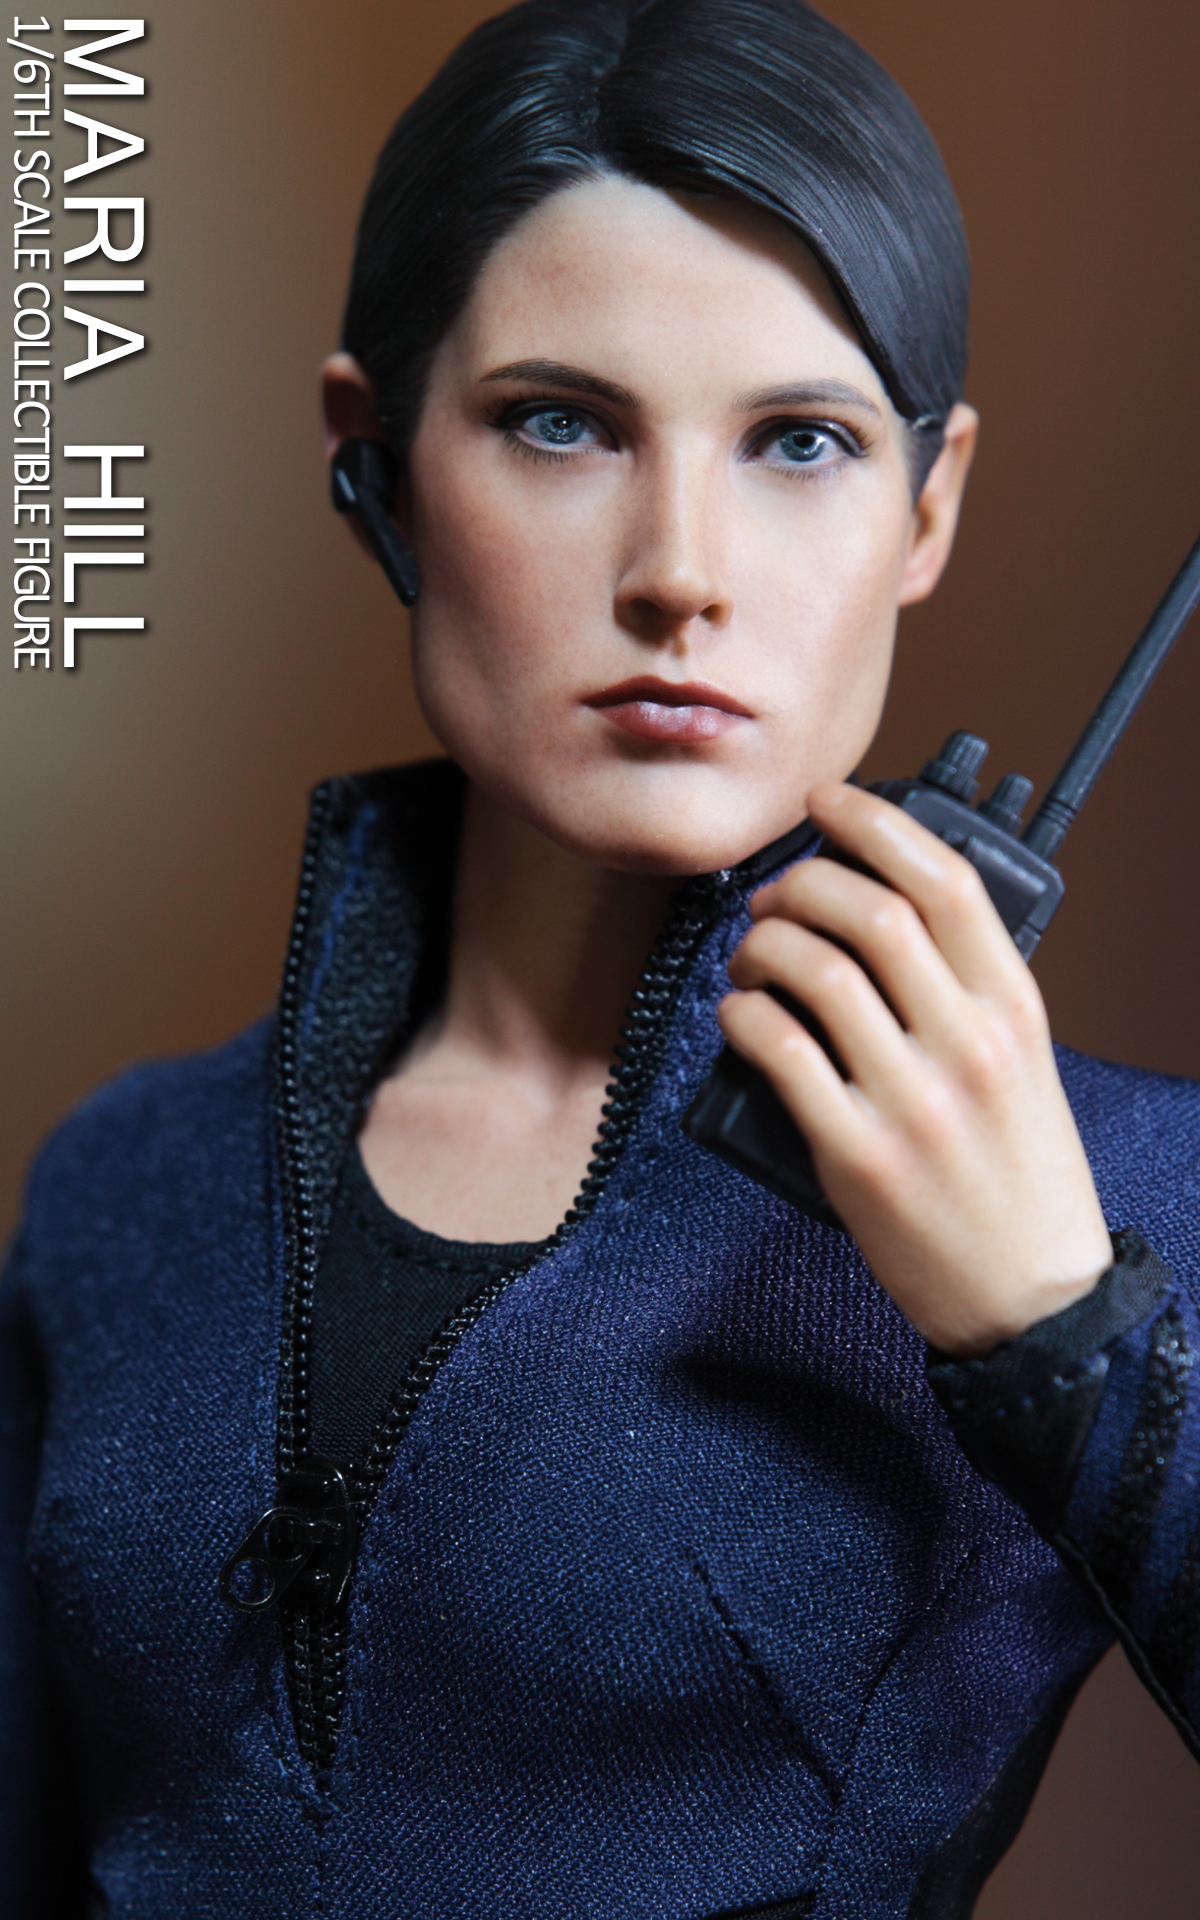 hottoys-avengers-age-of-ultron-maria-hill-picture10